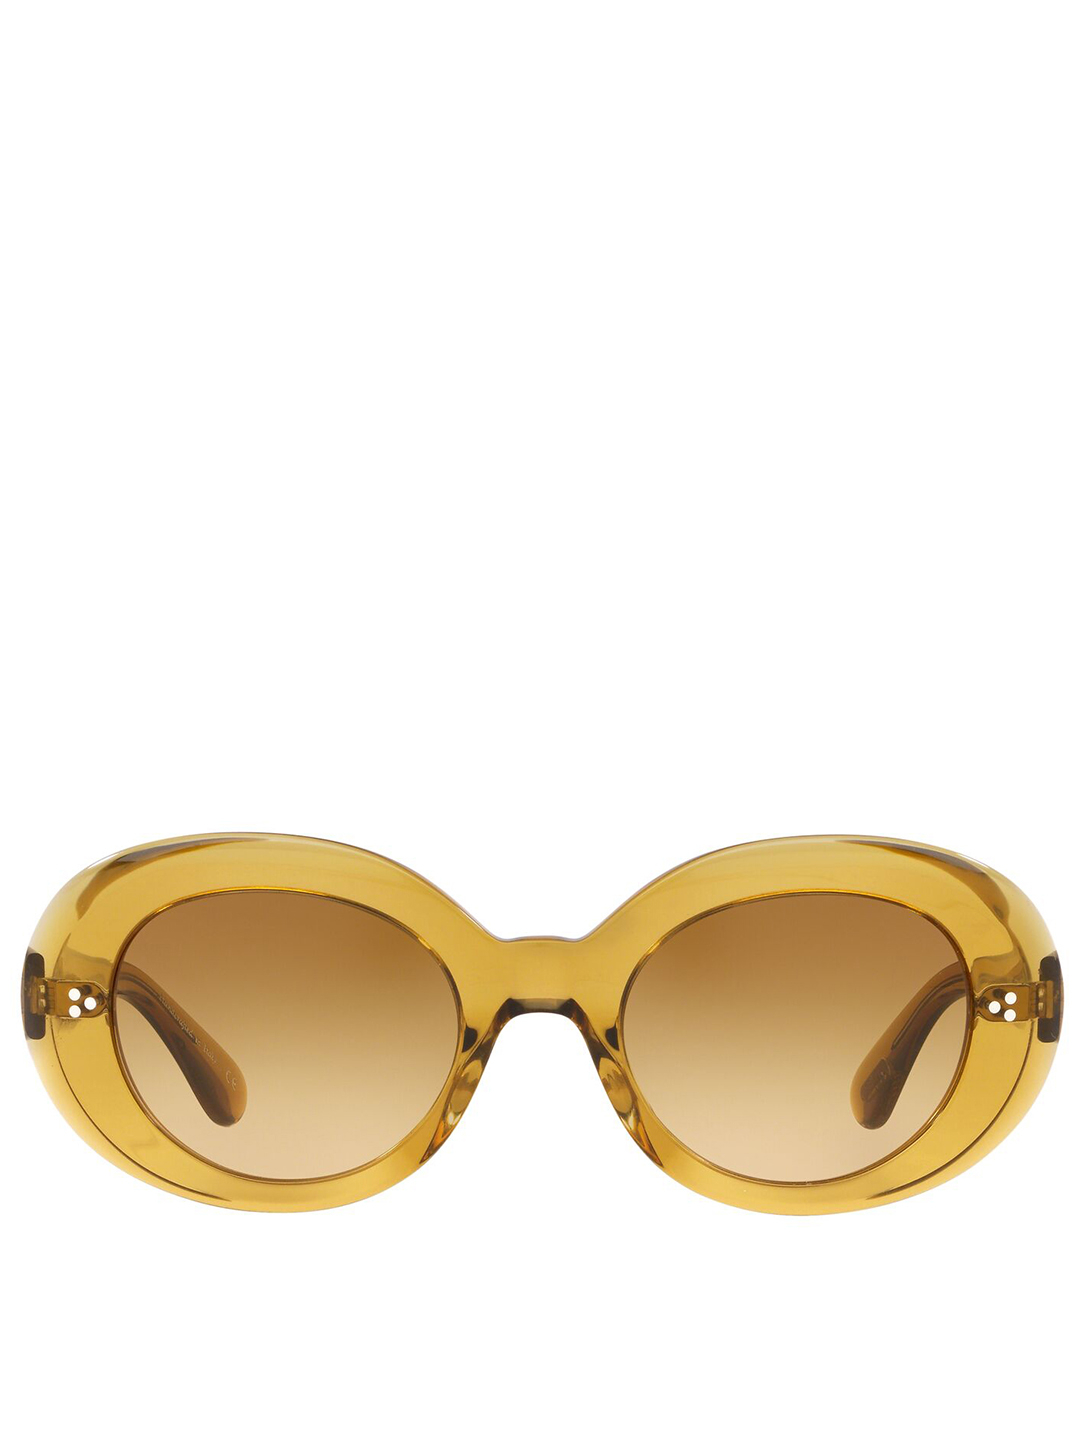 OLIVER PEOPLES Erissa Round Sunglasses Women's Yellow